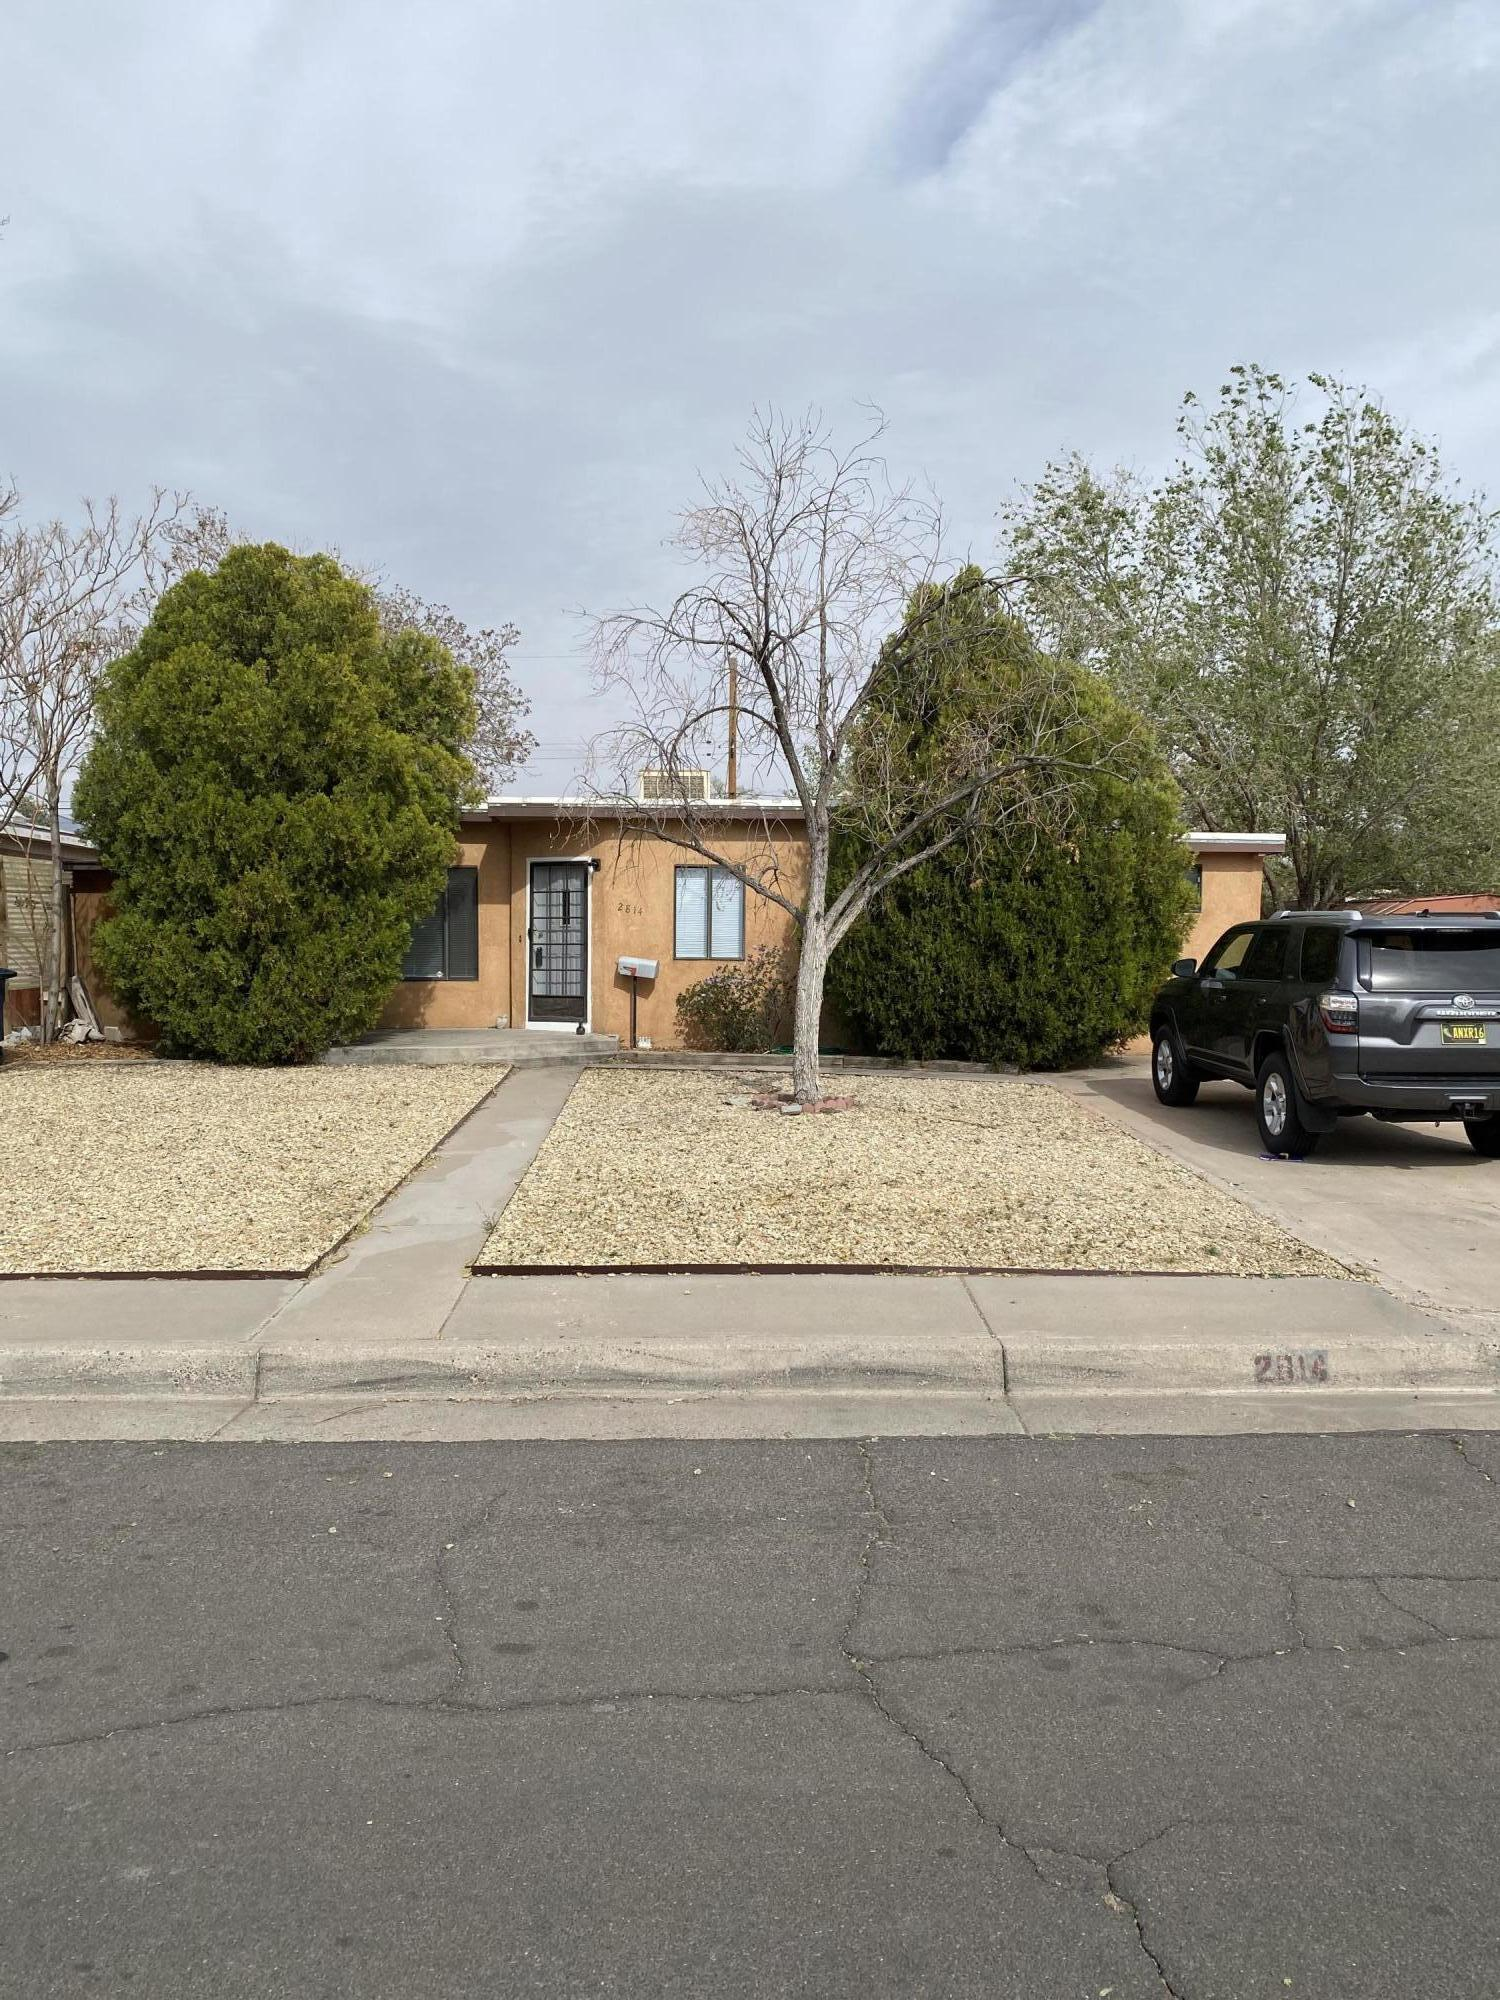 wonderful 3 bedroom 1 3/4 Bath home  new flooring, paint, lighting cozy little home with a fireplace in great room with a wide open kitchen with island and a small study.  Also a two car detached garage that needs to be converted with new door or a nice shop or casita so many possibilities